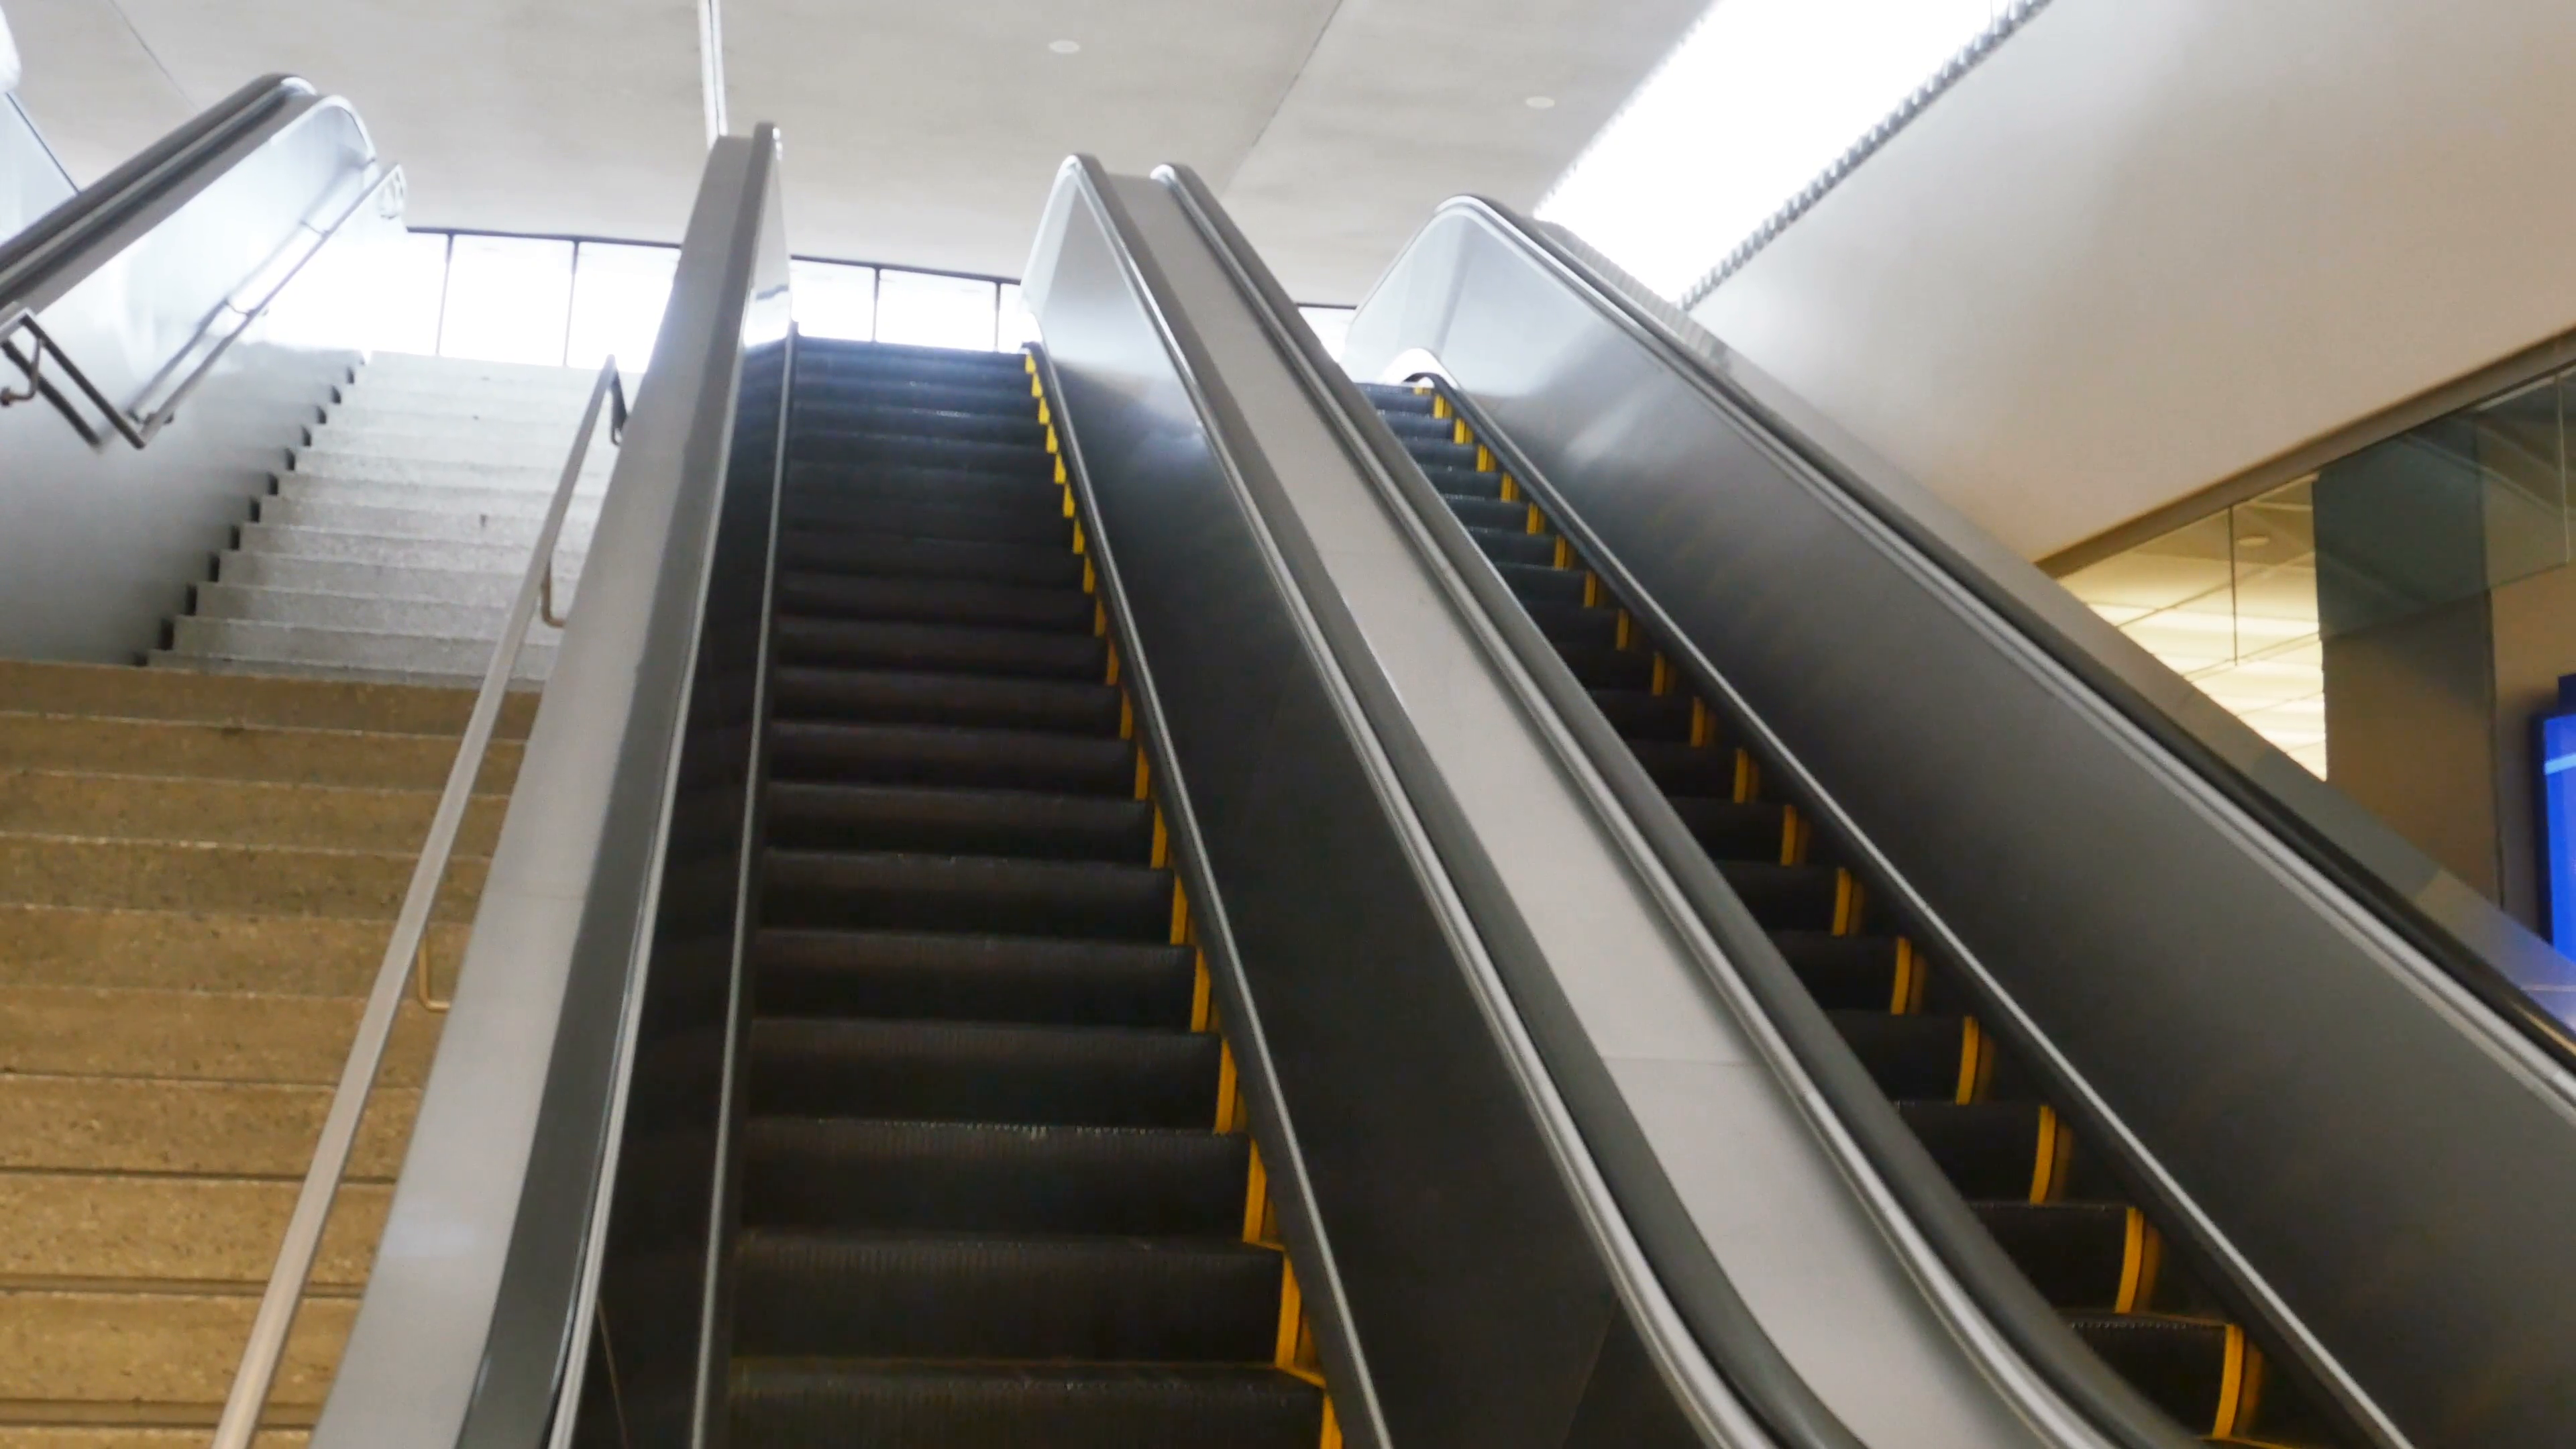 Looking Up Escalator at Airport, 4K Stock Video Footage - VideoBlocks